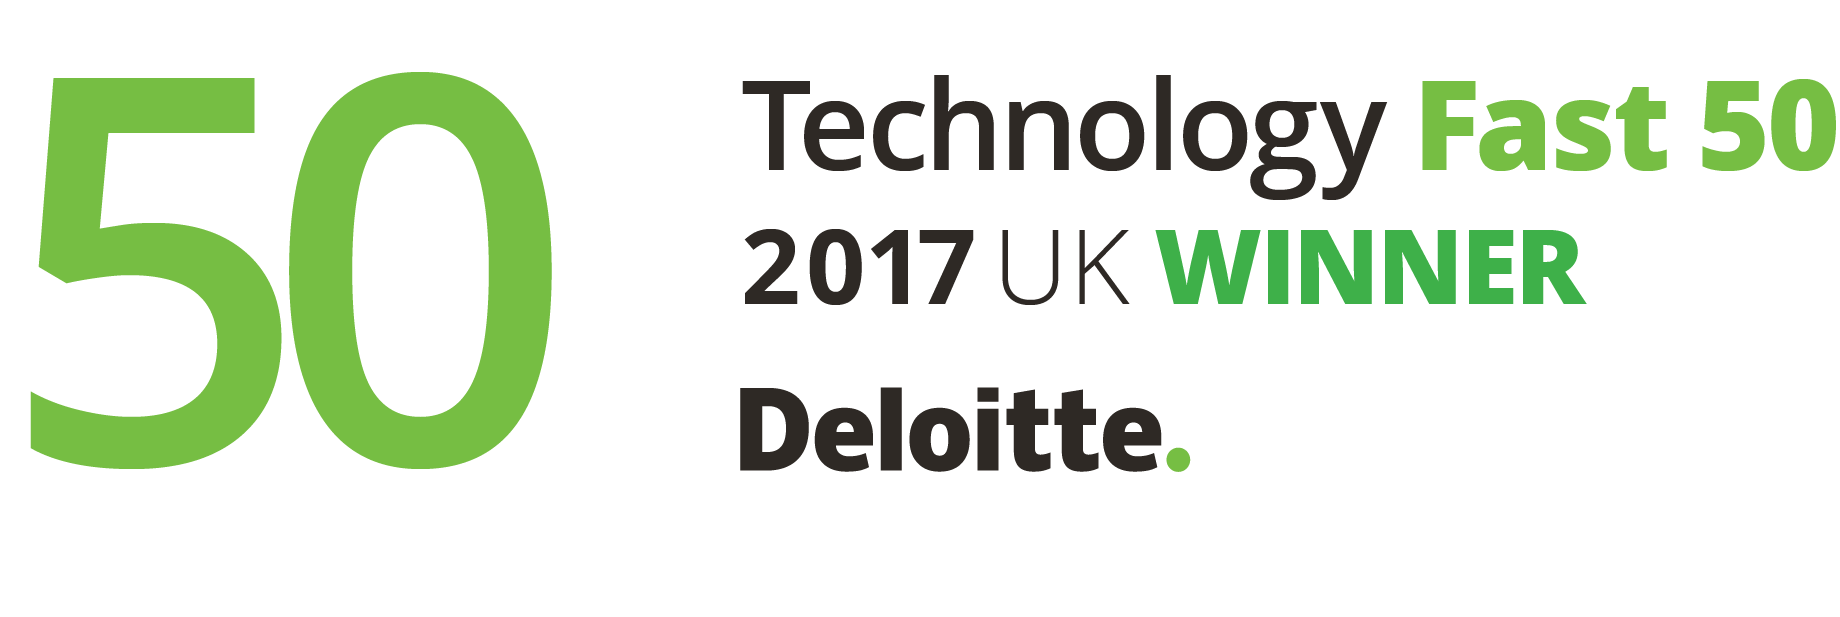 Deloitte Fast50 Winner UK PRI RGB_300dpi | Poq - The app commerce company